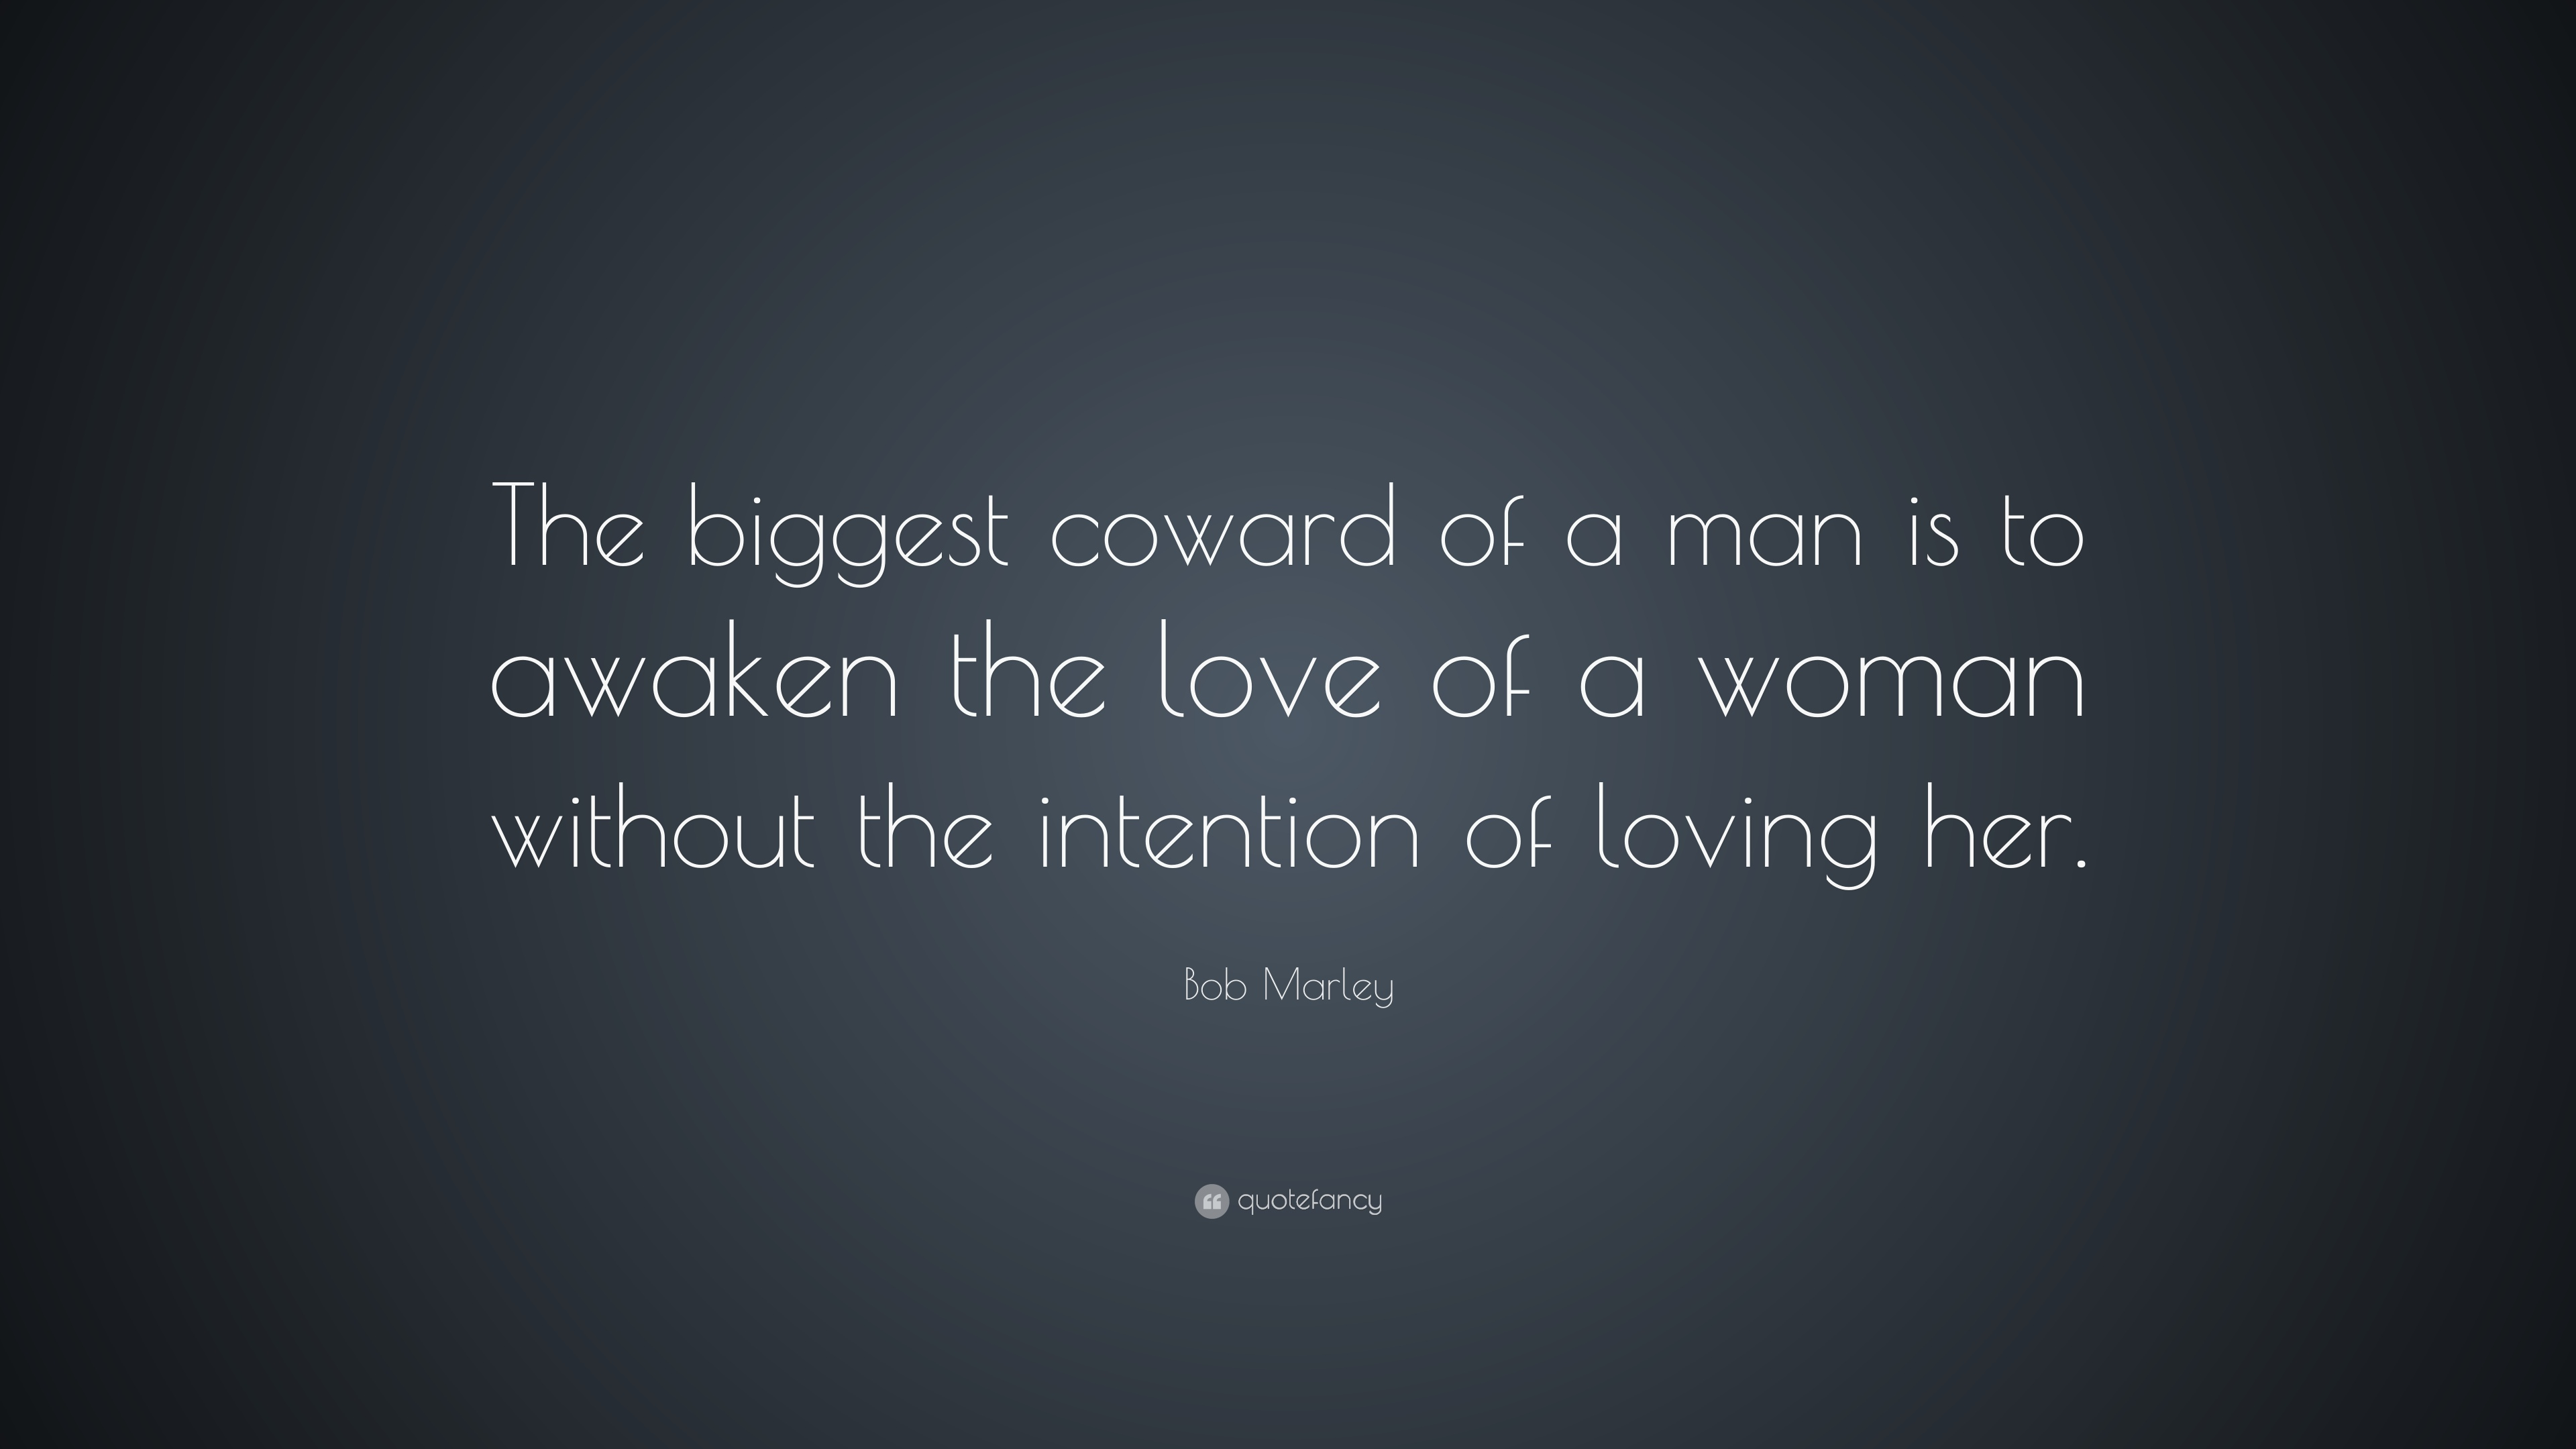 The biggest coward of a man